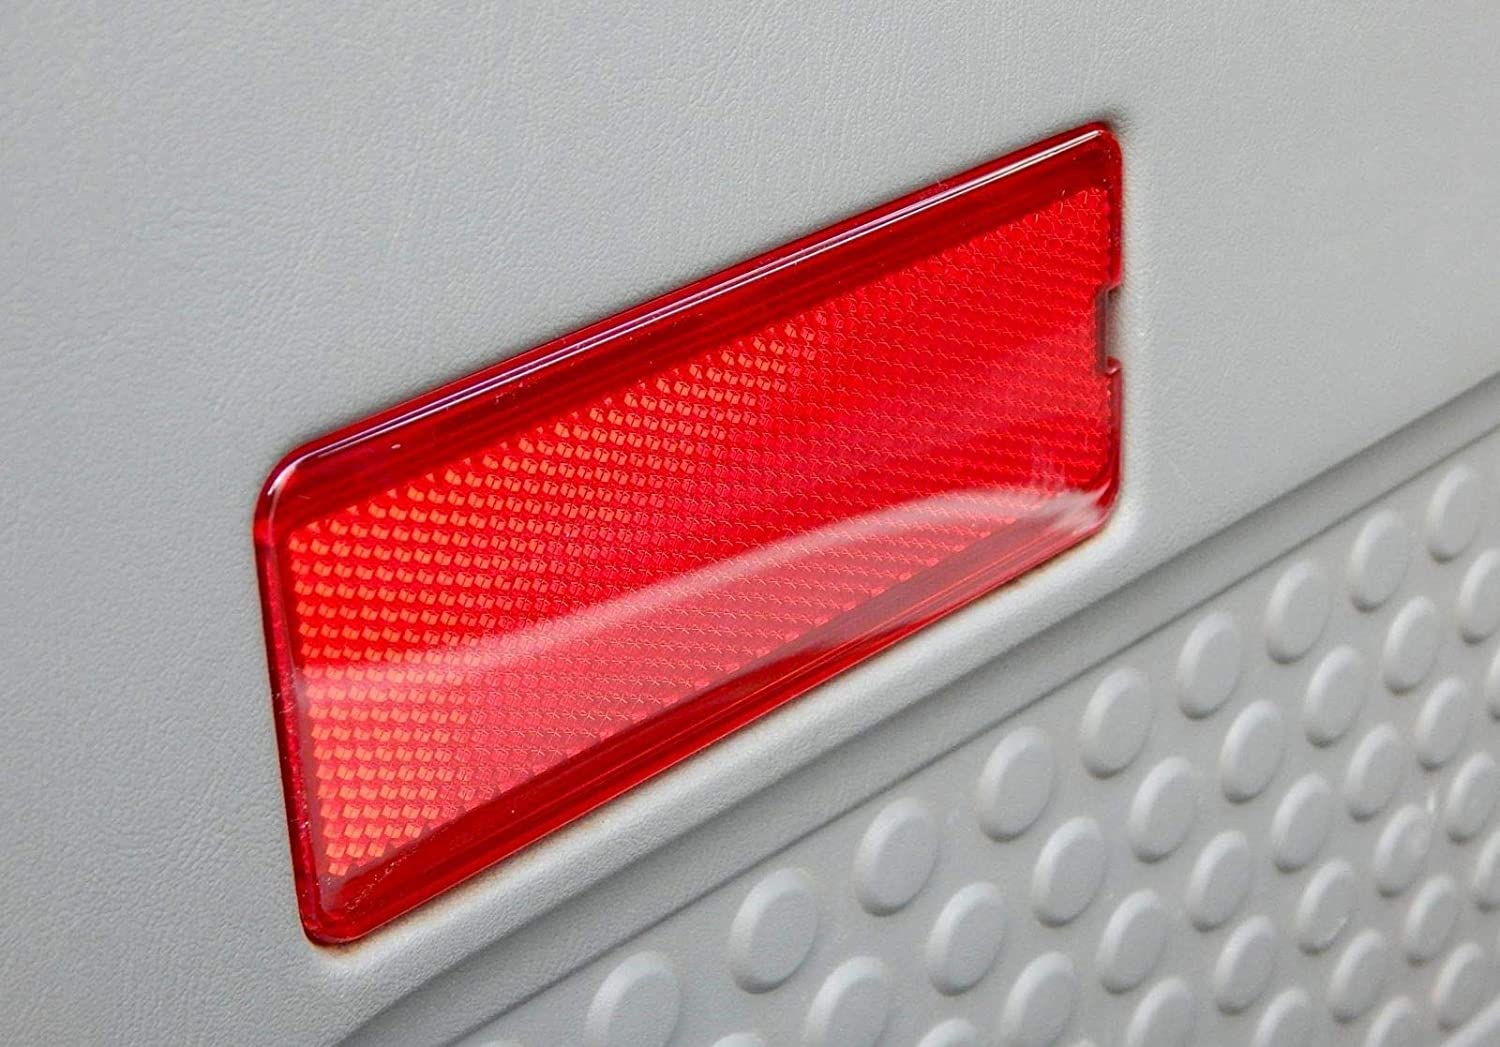 One or Pair One Piece ECOTRIC Red Premium Interior Front Rear Door Reflectors for Ford 1999-2007 SuperDuty F250 F350 F450 F550 /& 2000-2005 Excursion